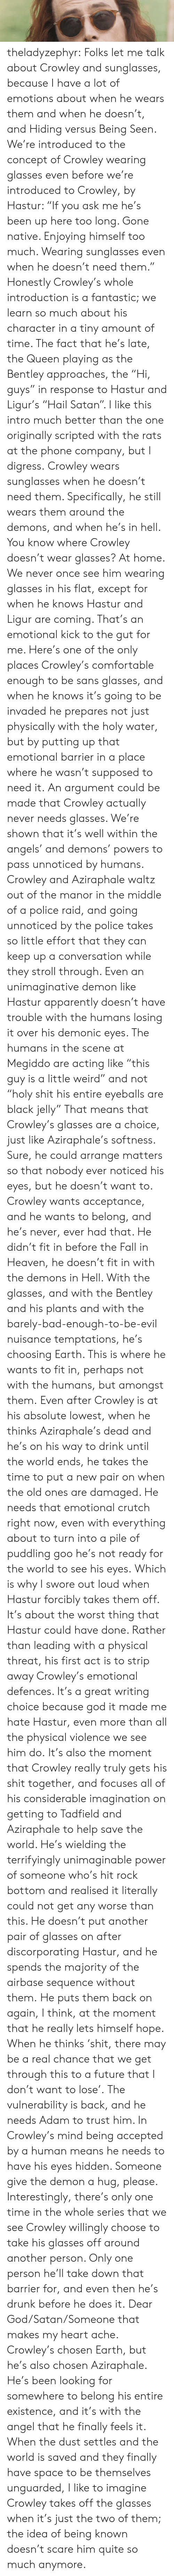 "Holy Water: theladyzephyr:  Folks let me talk about Crowley and sunglasses, because I have a lot of emotions about when he wears them and when he doesn't, and Hiding versus Being Seen. We're introduced to the concept of Crowley wearing glasses even before we're introduced to Crowley, by Hastur: ""If you ask me he's been up here too long. Gone native. Enjoying himself too much. Wearing sunglasses even when he doesn't need them."" Honestly Crowley's whole introduction is a fantastic; we learn so much about his character in a tiny amount of time. The fact that he's late, the Queen playing as the Bentley approaches, the ""Hi, guys"" in response to Hastur and Ligur's ""Hail Satan"". I like this intro much better than the one originally scripted with the rats at the phone company, but I digress. Crowley wears sunglasses when he doesn't need them. Specifically, he still wears them around the demons, and when he's in hell. You know where Crowley doesn't wear glasses? At home. We never once see him wearing glasses in his flat, except for when he knows Hastur and Ligur are coming. That's an emotional kick to the gut for me. Here's one of the only places Crowley's comfortable enough to be sans glasses, and when he knows it's going to be invaded he prepares not just physically with the holy water, but by putting up that emotional barrier in a place where he wasn't supposed to need it. An argument could be made that Crowley actually never needs glasses. We're shown that it's well within the angels' and demons' powers to pass unnoticed by humans. Crowley and Aziraphale waltz out of the manor in the middle of a police raid, and going unnoticed by the police takes so little effort that they can keep up a conversation while they stroll through. Even an unimaginative demon like Hastur apparently doesn't have trouble with the humans losing it over his demonic eyes. The humans in the scene at Megiddo are acting like ""this guy is a little weird"" and not ""holy shit his entire eyeballs are black jelly"" That means that Crowley's glasses are a choice, just like Aziraphale's softness. Sure, he could arrange matters so that nobody ever noticed his eyes, but he doesn't want to. Crowley wants acceptance, and he wants to belong, and he's never, ever had that. He didn't fit in before the Fall in Heaven, he doesn't fit in with the demons in Hell. With the glasses, and with the Bentley and his plants and with the barely-bad-enough-to-be-evil nuisance temptations, he's choosing Earth. This is where he wants to fit in, perhaps not with the humans, but amongst them. Even after Crowley is at his absolute lowest, when he thinks Aziraphale's dead and he's on his way to drink until the world ends, he takes the time to put a new pair on when the old ones are damaged. He needs that emotional crutch right now, even with everything about to turn into a pile of puddling goo he's not ready for the world to see his eyes. Which is why I swore out loud when Hastur forcibly takes them off. It's about the worst thing that Hastur could have done. Rather than leading with a physical threat, his first act is to strip away Crowley's emotional defences. It's a great writing choice because god it made me hate Hastur, even more than all the physical violence we see him do. It's also the moment that Crowley really truly gets his shit together, and focuses all of his considerable imagination on getting to Tadfield and Aziraphale to help save the world. He's wielding the terrifyingly unimaginable power of someone who's hit rock bottom and realised it literally could not get any worse than this. He doesn't put another pair of glasses on after discorporating Hastur, and he spends the majority of the airbase sequence without them. He puts them back on again, I think, at the moment that he really lets himself hope. When he thinks 'shit, there may be a real chance that we get through this to a future that I don't want to lose'. The vulnerability is back, and he needs Adam to trust him. In Crowley's mind being accepted by a human means he needs to have his eyes hidden. Someone give the demon a hug, please. Interestingly, there's only one time in the whole series that we see Crowley willingly choose to take his glasses off around another person. Only one person he'll take down that barrier for, and even then he's drunk before he does it. Dear God/Satan/Someone that makes my heart ache. Crowley's chosen Earth, but he's also chosen Aziraphale. He's been looking for somewhere to belong his entire existence, and it's with the angel that he finally feels it. When the dust settles and the world is saved and they finally have space to be themselves unguarded, I like to imagine Crowley takes off the glasses when it's just the two of them; the idea of being known doesn't scare him quite so much anymore."